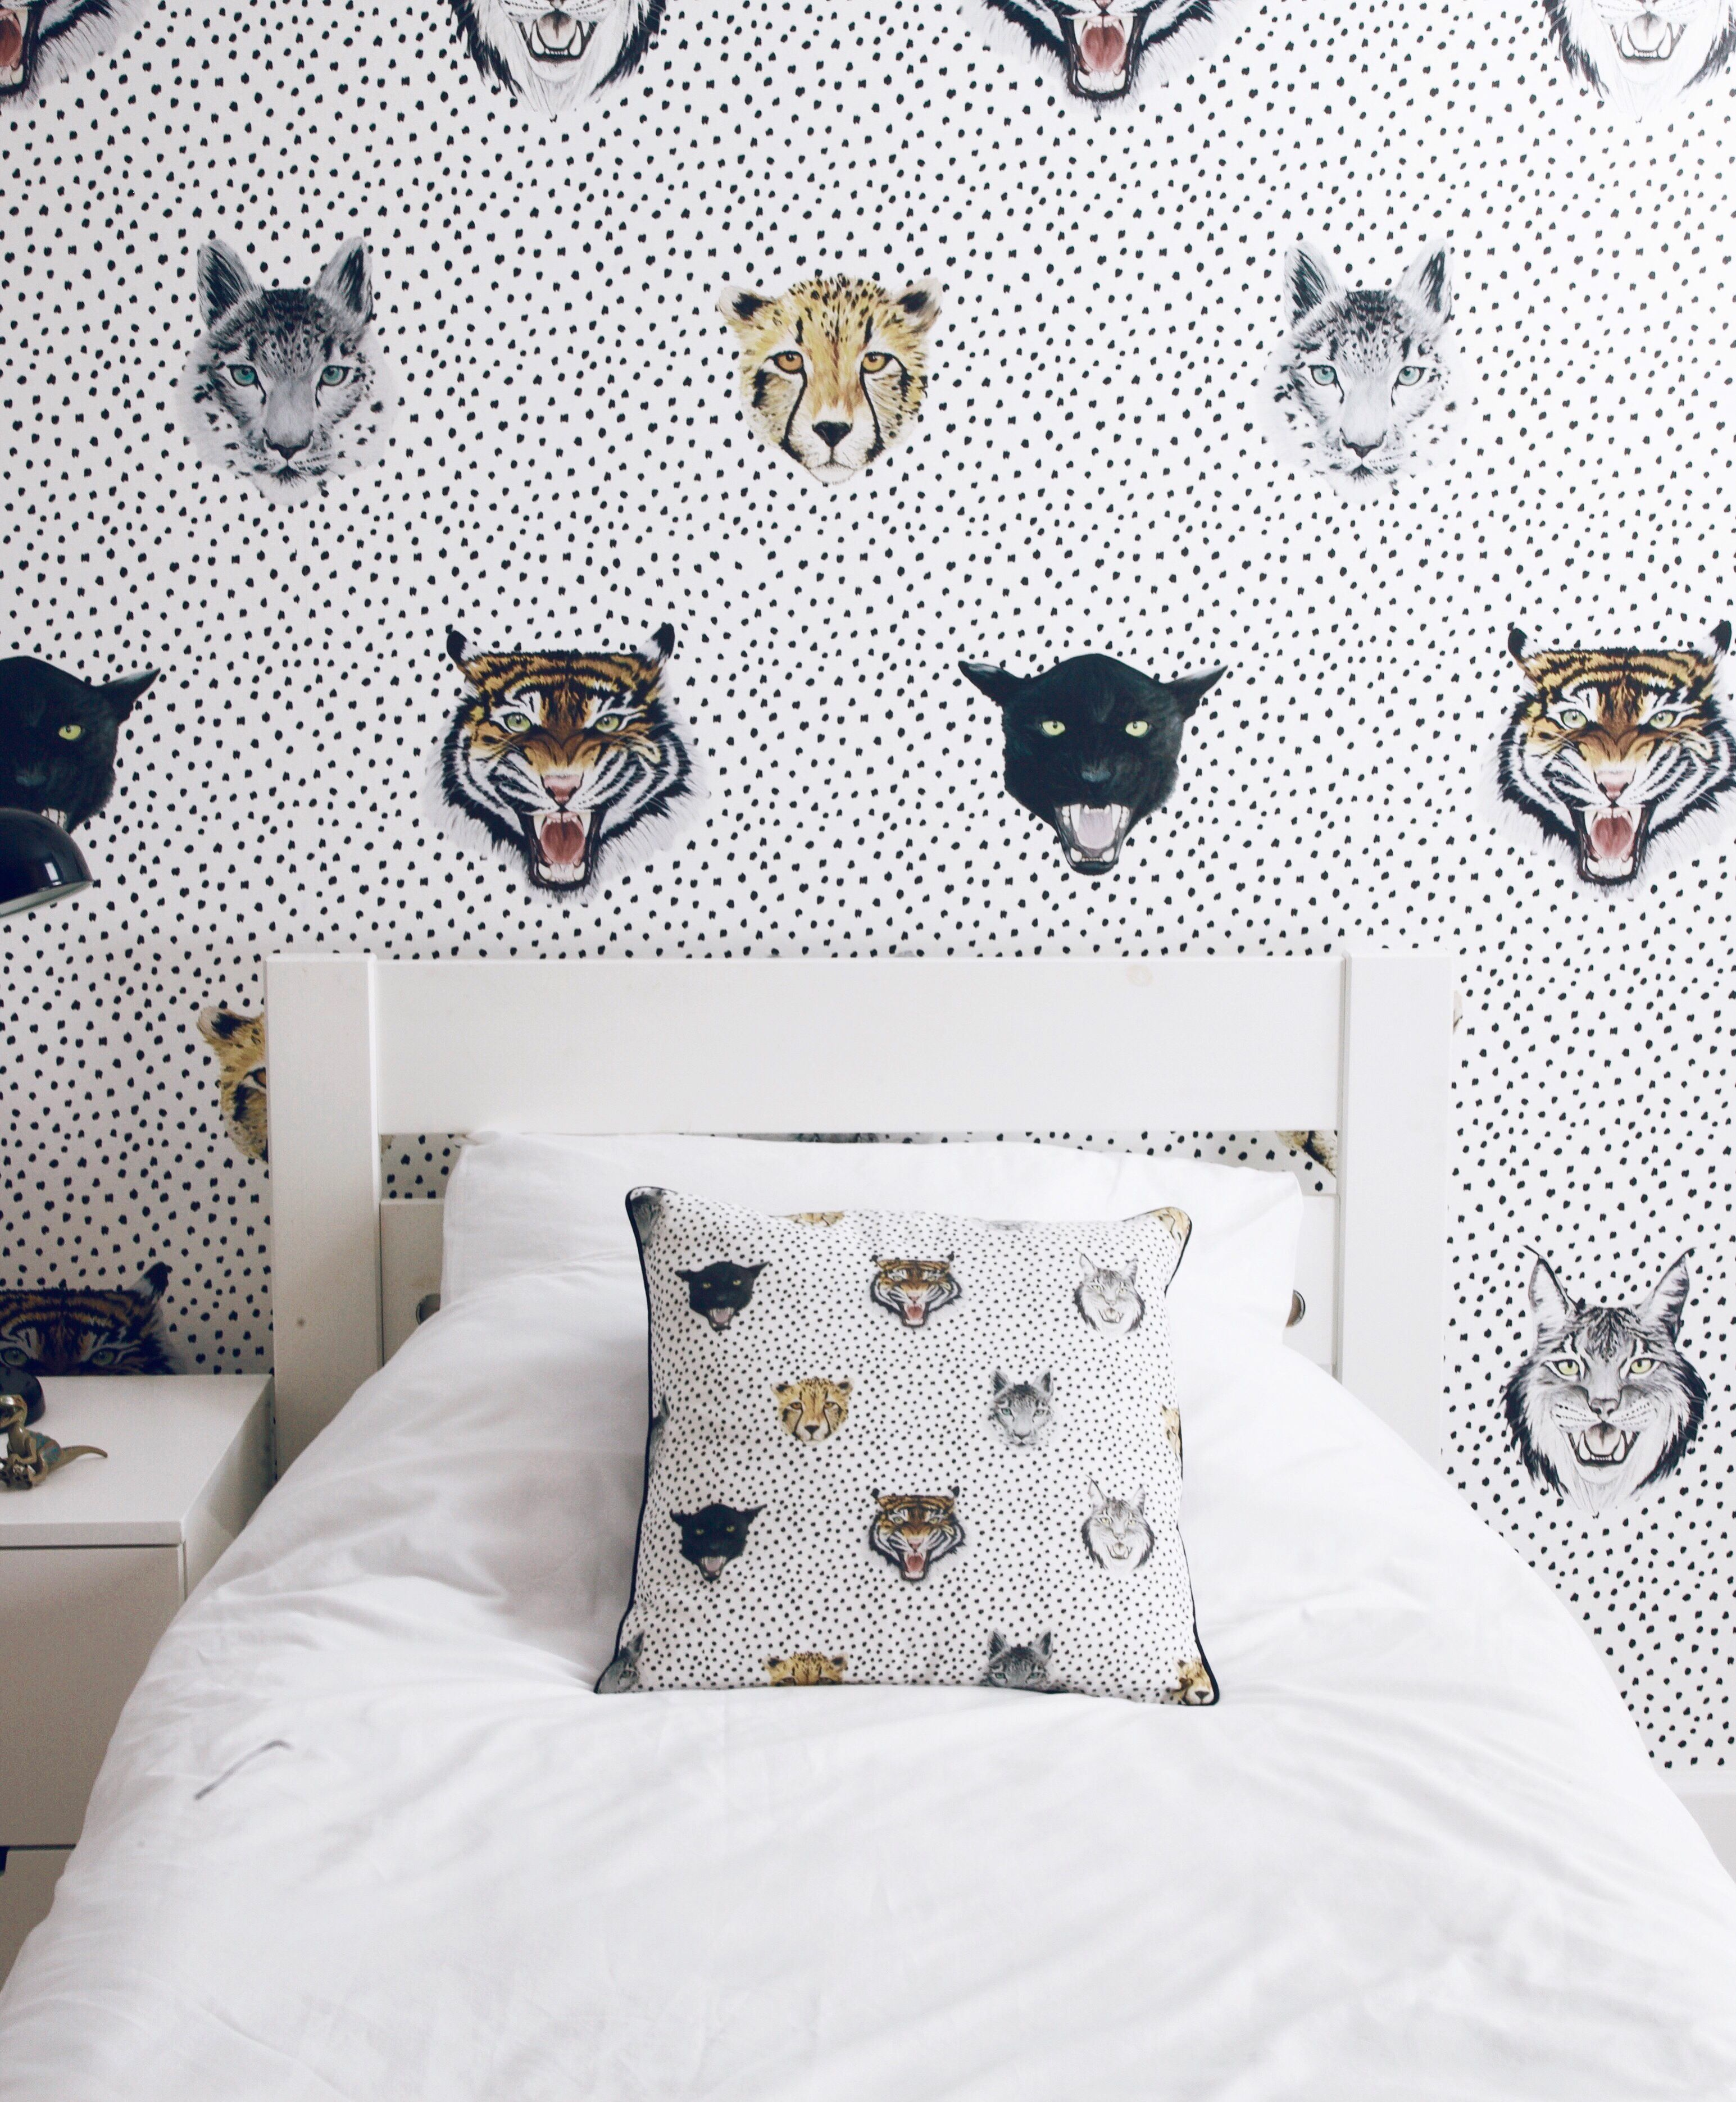 Wildcats Wallpaper Large Scale Sample Kids Bedroom Decor Bedroom Decor Kids Bedroom